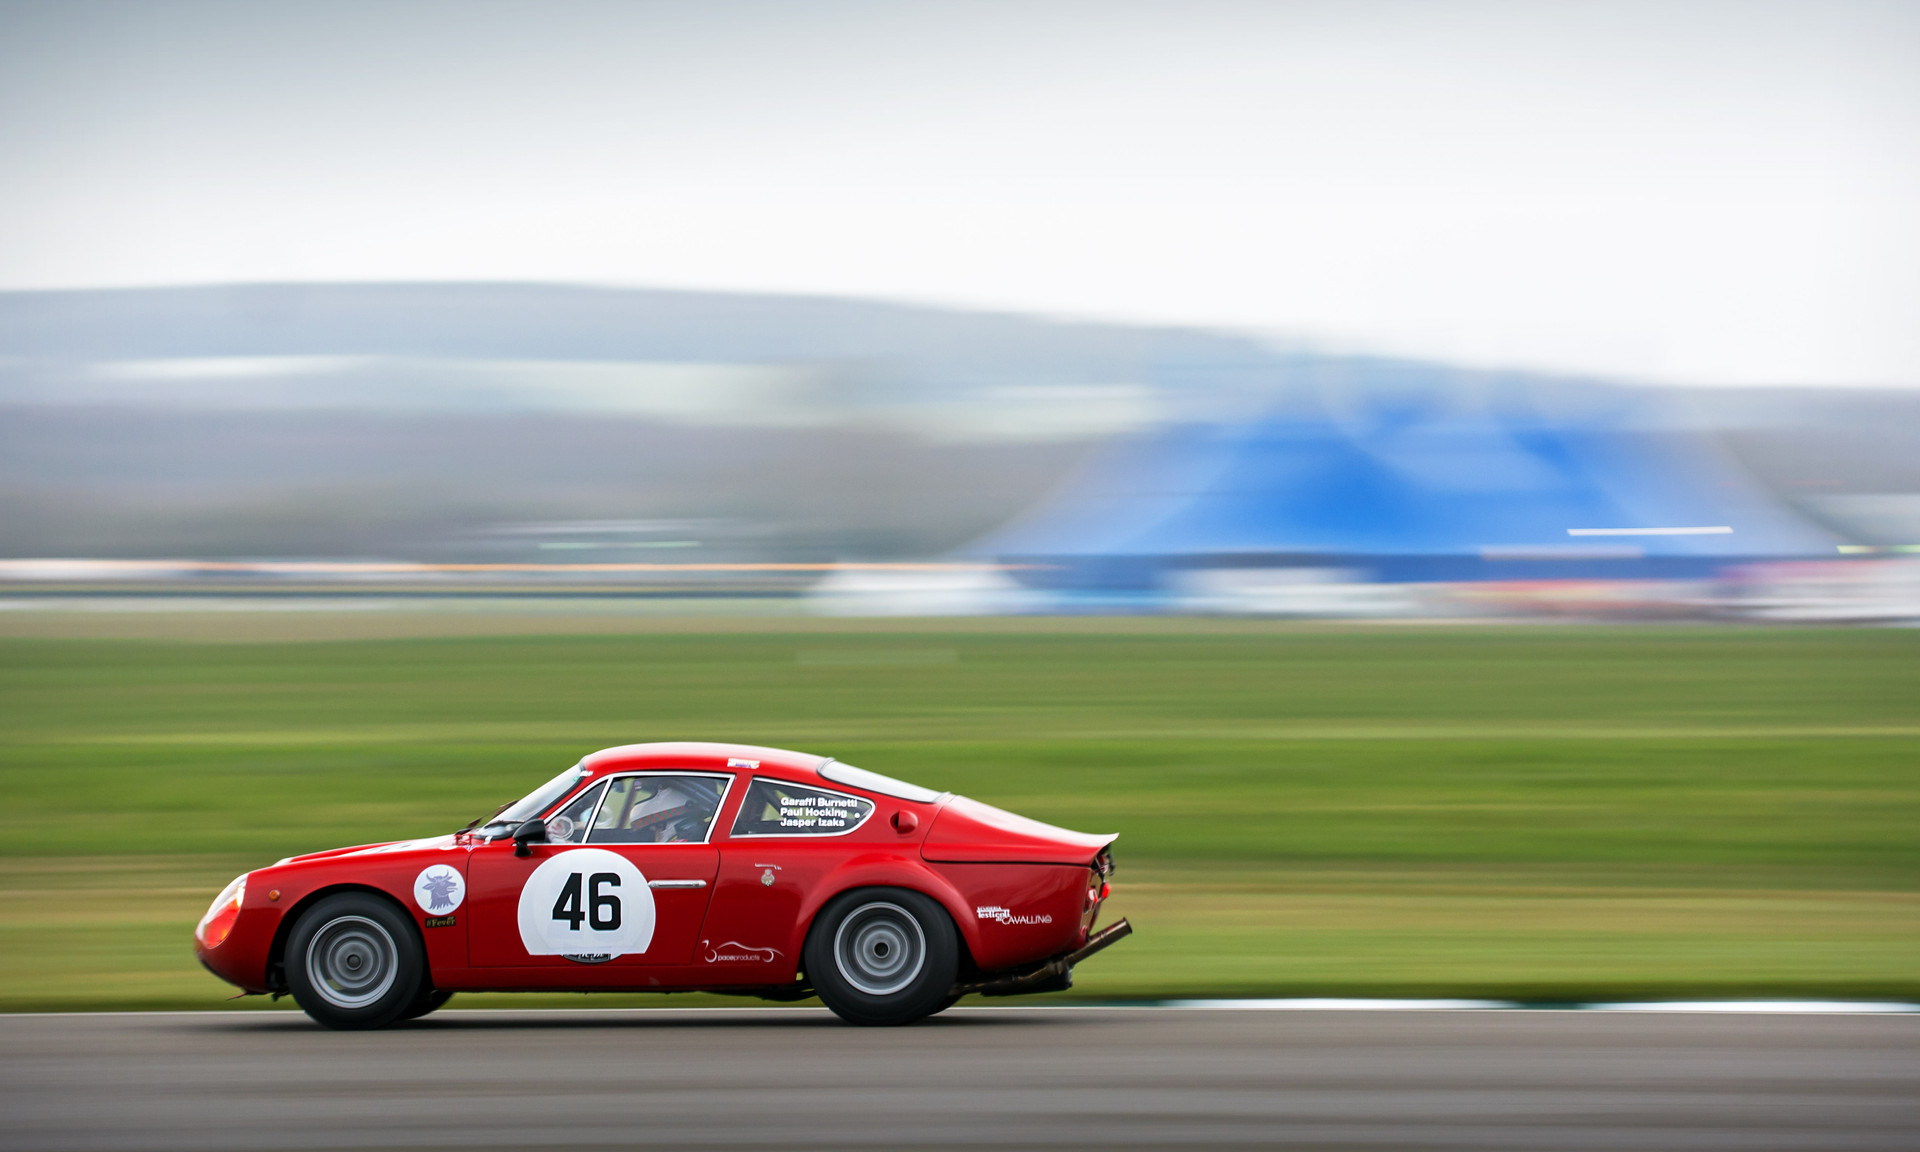 Paul Hocking's 1963 Abarth-Simca 2000 GT at the Goodwood 76MM